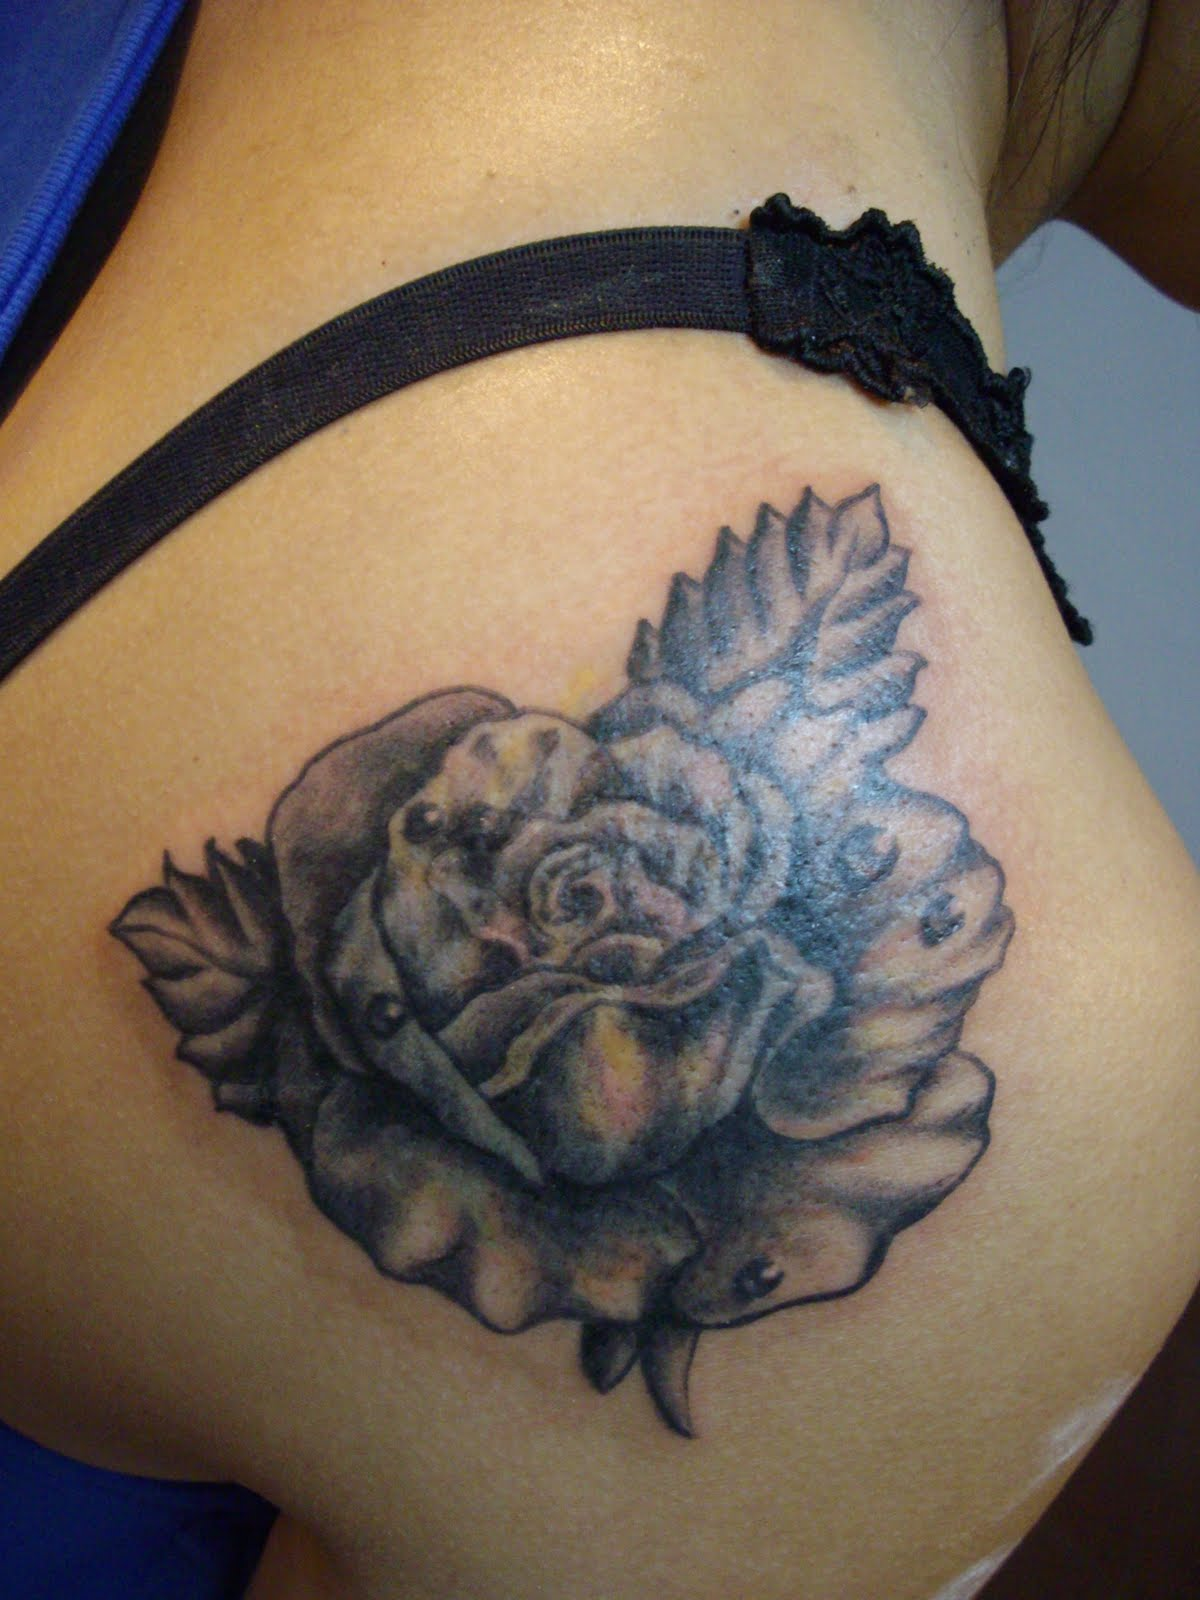 tattoos and body piercing essay Tattoos and piercings are popular forms of body art that can be associated with serious health risks read this before getting new ink or piercings.